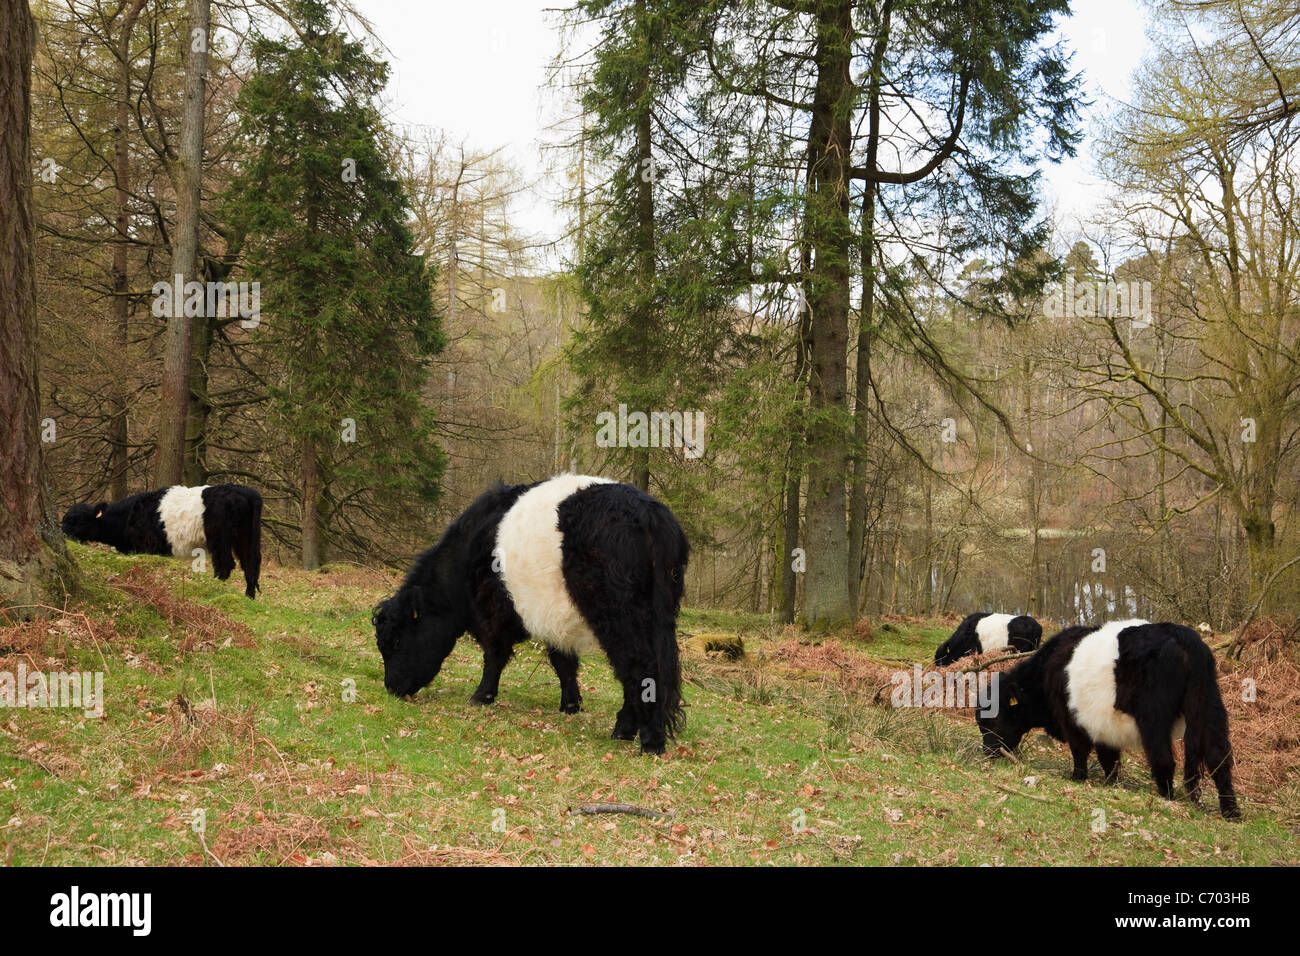 Belted Galloway cattle grazing for sustainable conservation in coniferous woodland near Tarn Hows, Cumbria, England, - Stock Image